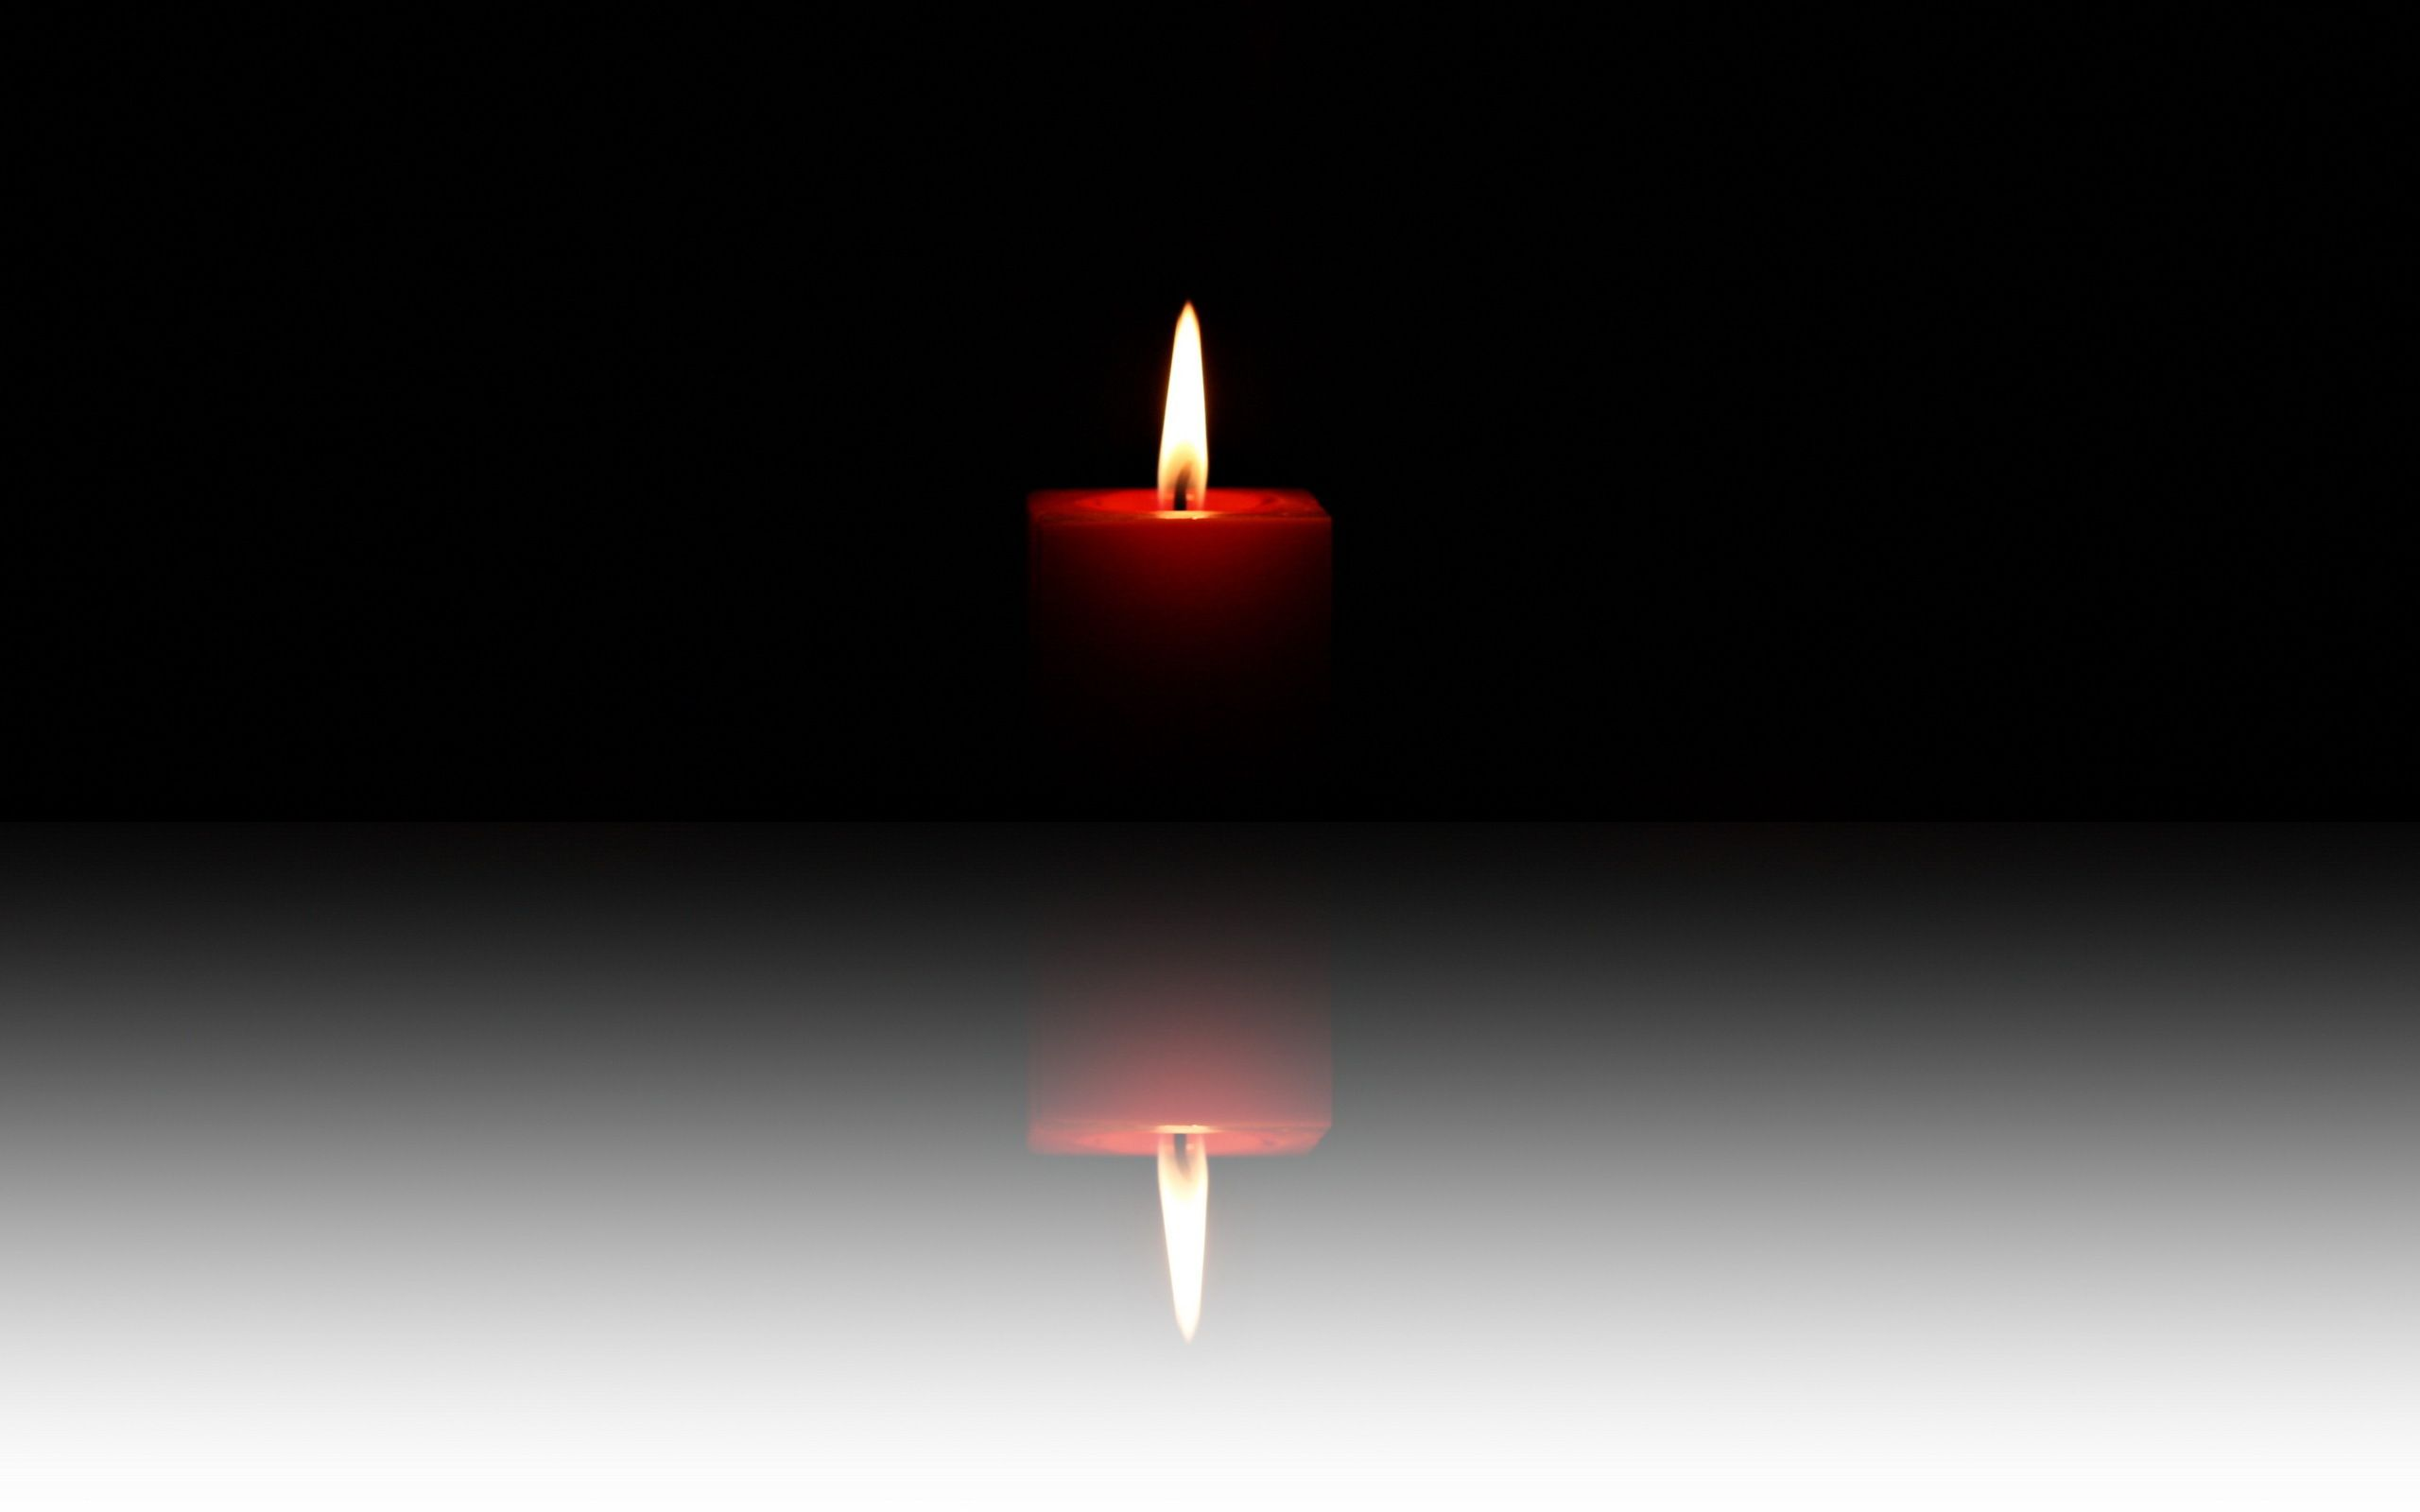 pictures of lit candles